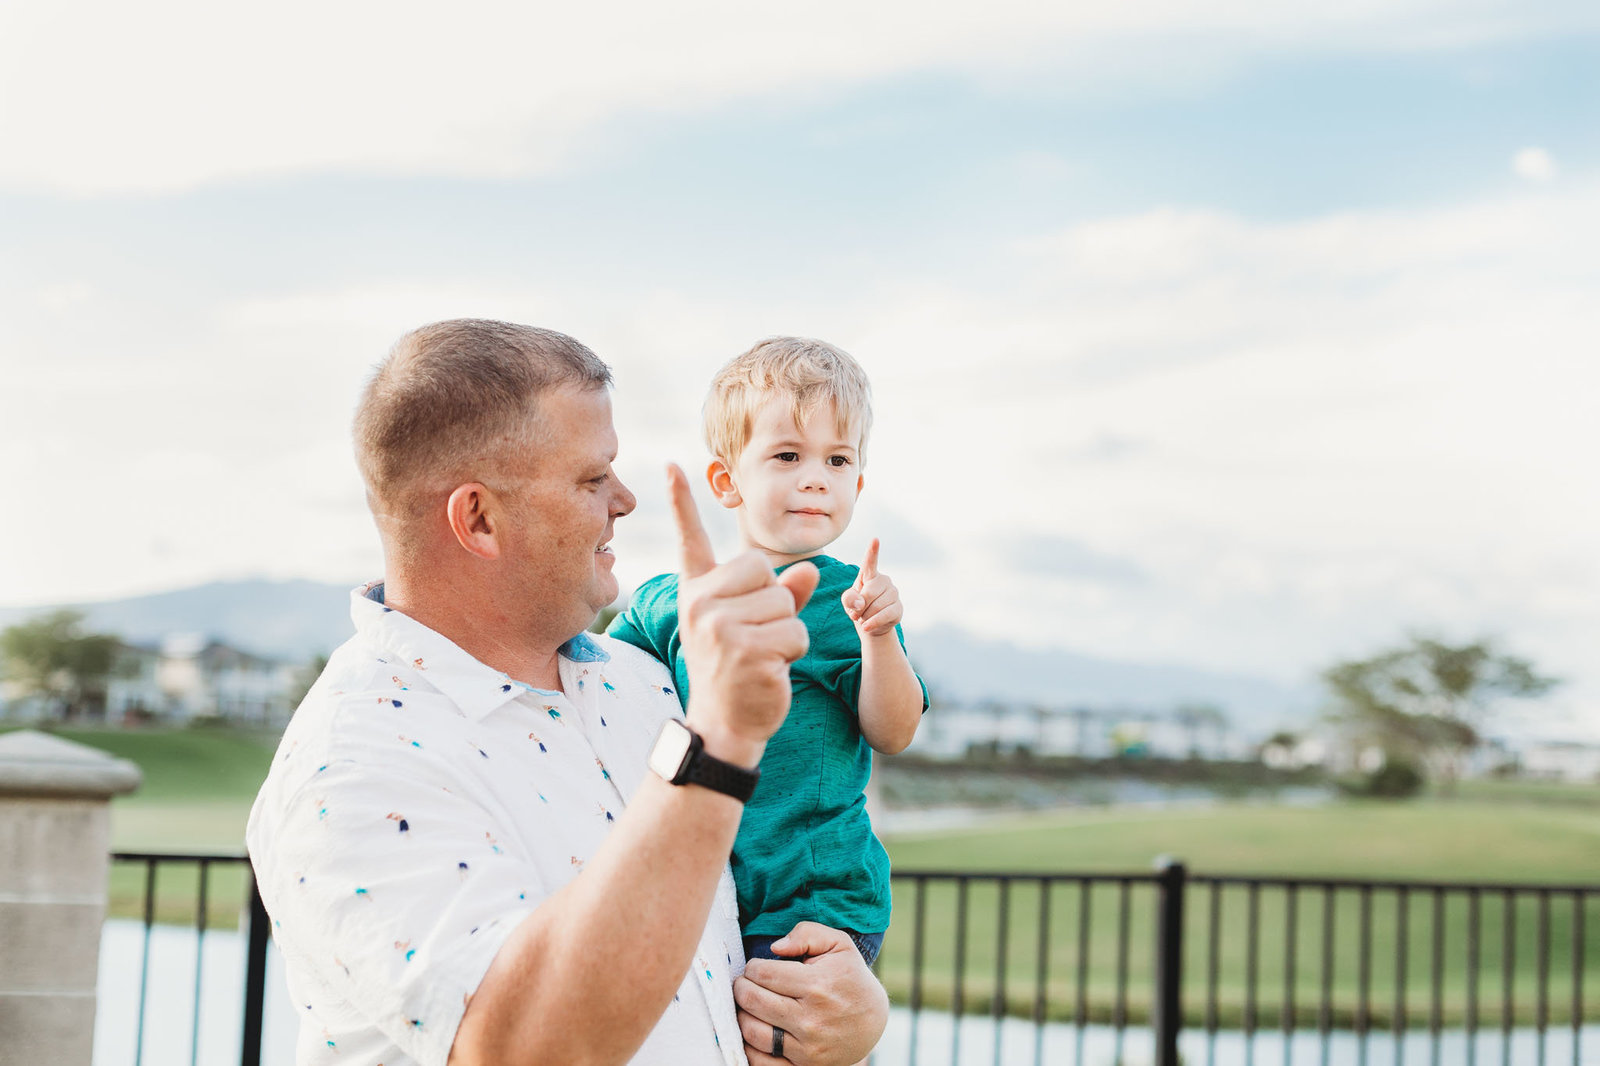 Oahu, Hawaii Lifestyle Photographer - Lifestyle Photography - Brooke Flanagan Photography - Father and Son Full color